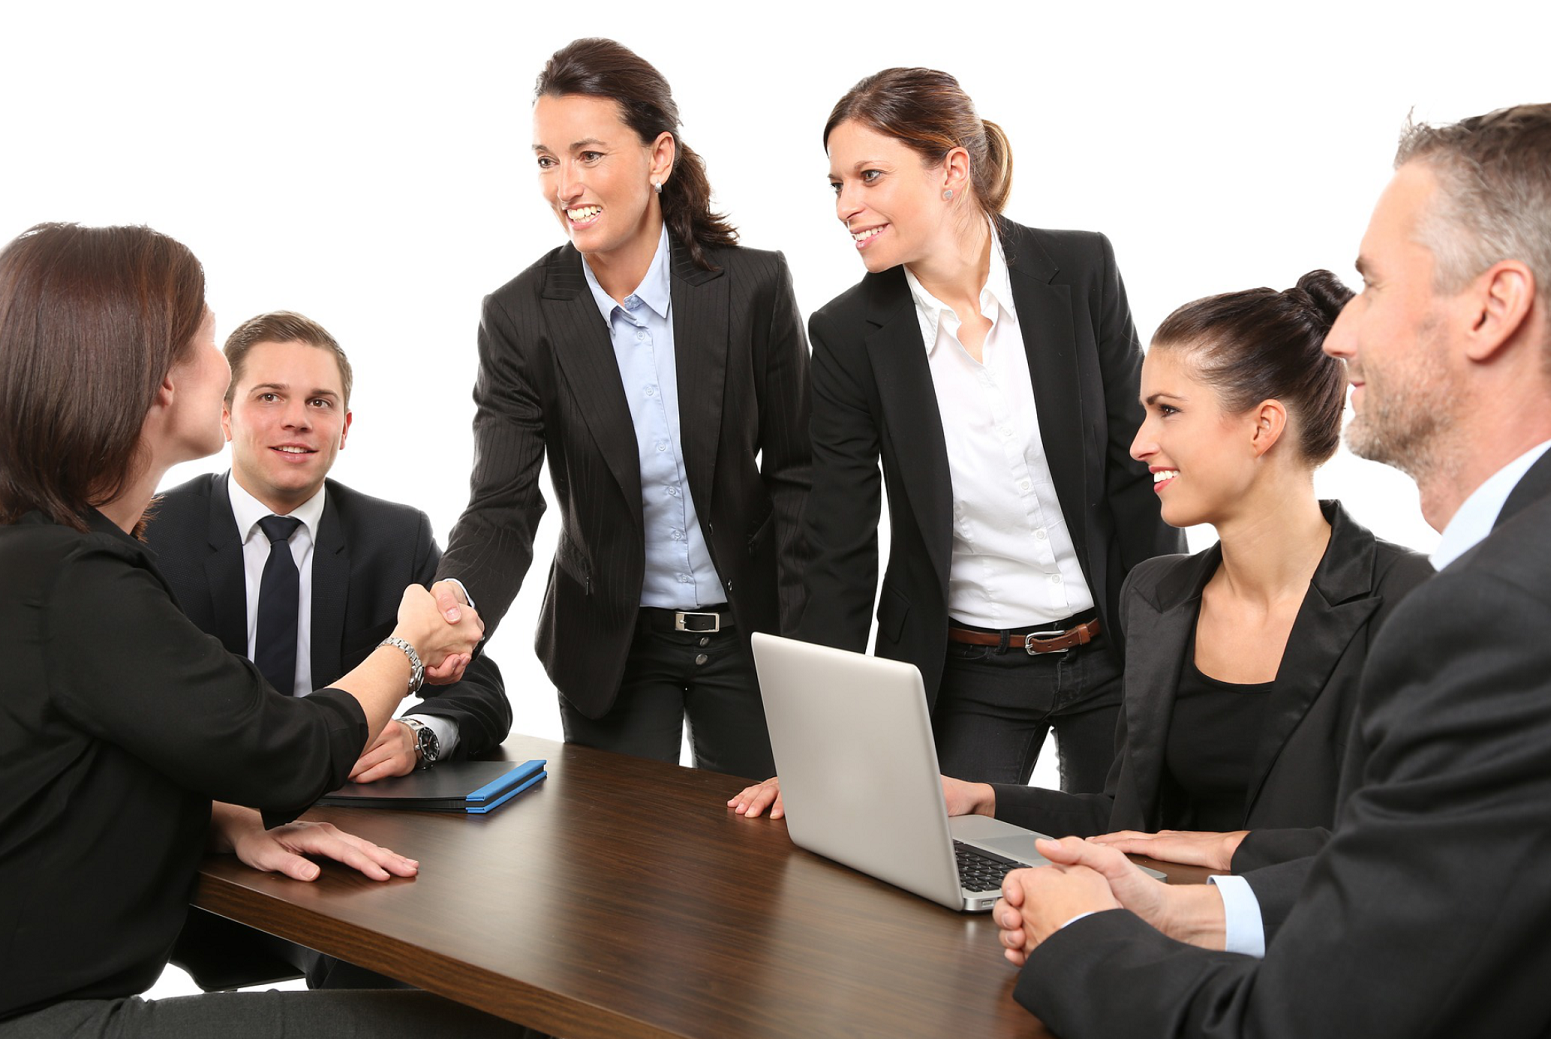 business-brokers-sydney-nsw-abba-group-meeting-with-client-sell-business-nsw